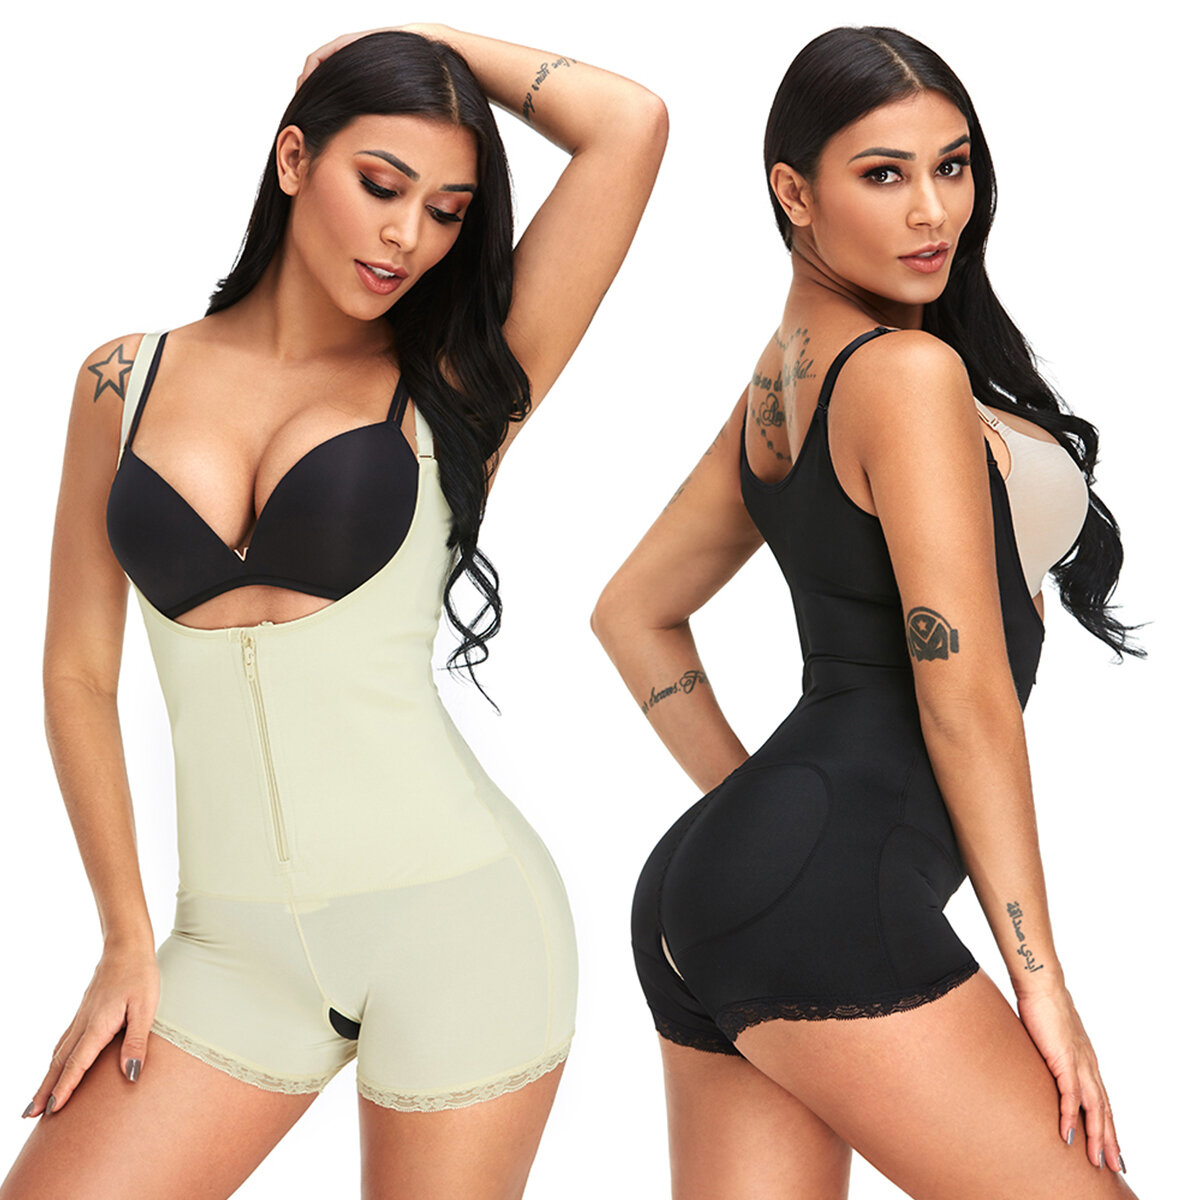 7e3cb62bd Women Body-Shaping Clothes Girdles for Belly Reducing Shapewear Firm  Control Abdomen Waist Support Trainer Slimming Girdle Belt - Black S COD